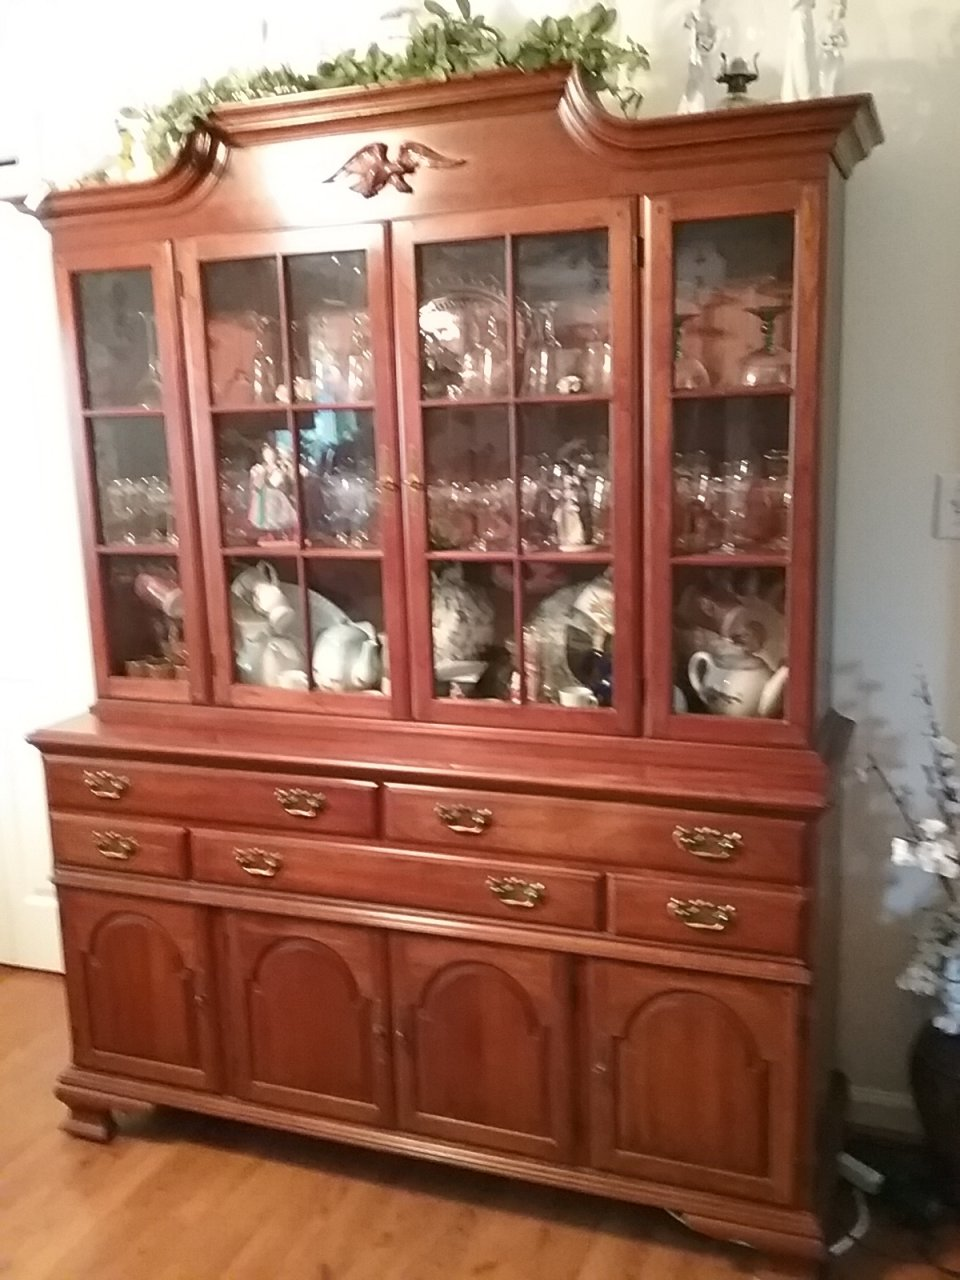 https://d29jd5m3t61t9.cloudfront.net/myantiquefurniturecollection.com/images/fbfiles/images/20170414_181550-vnroxgiv91_v_1492218202.jpg